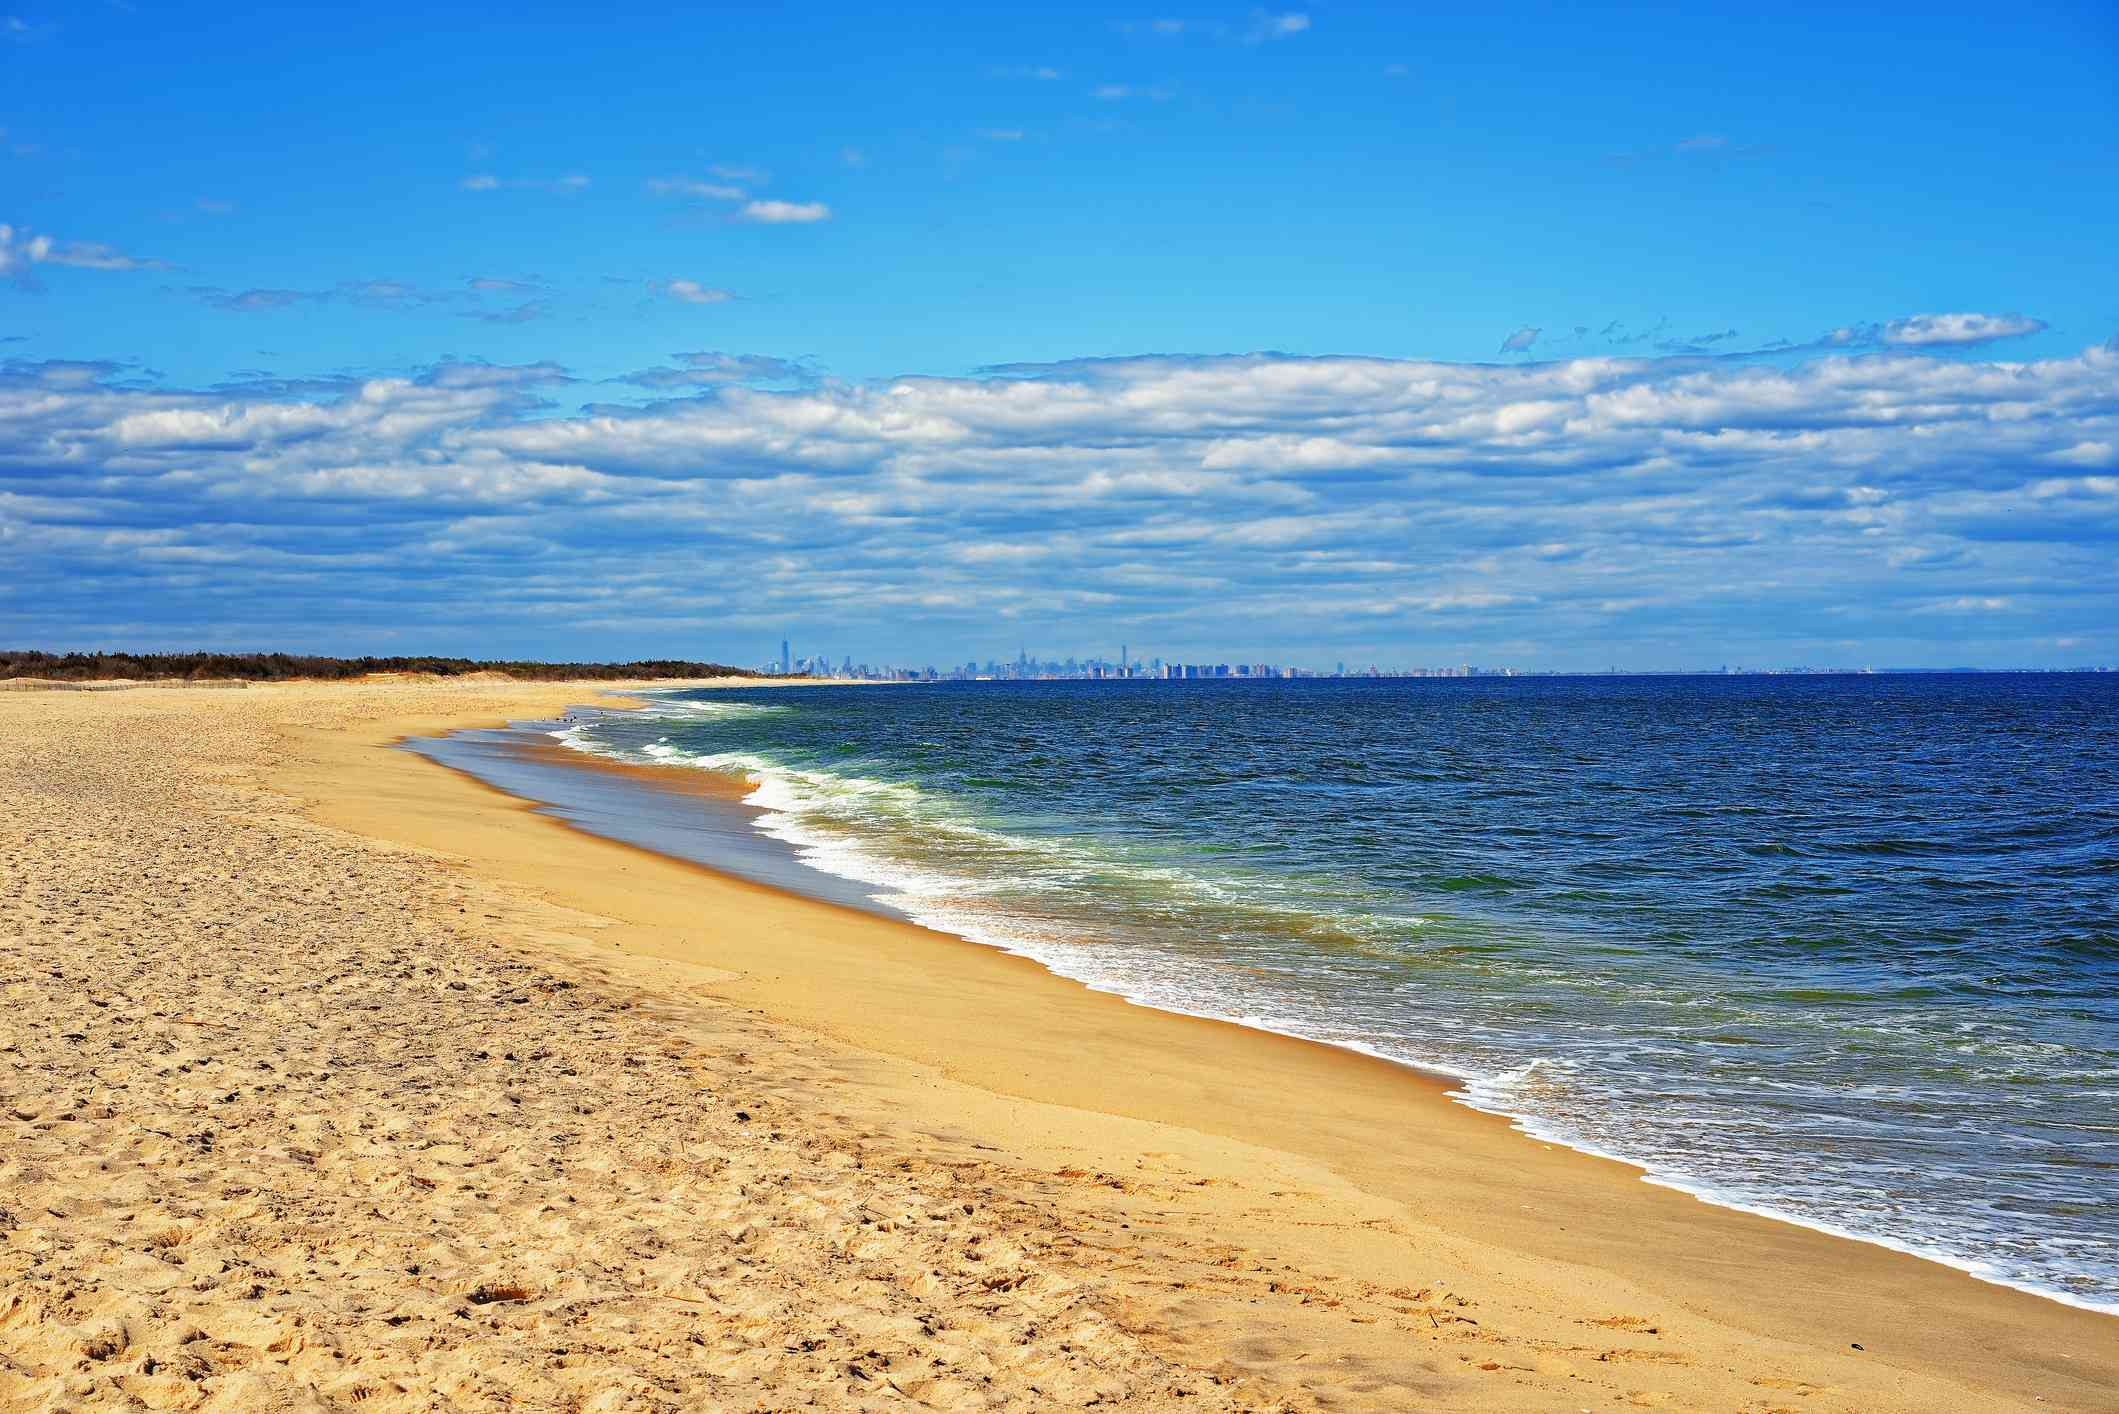 Ocean shore and view to NYC from Sandy Hook, New Jersey